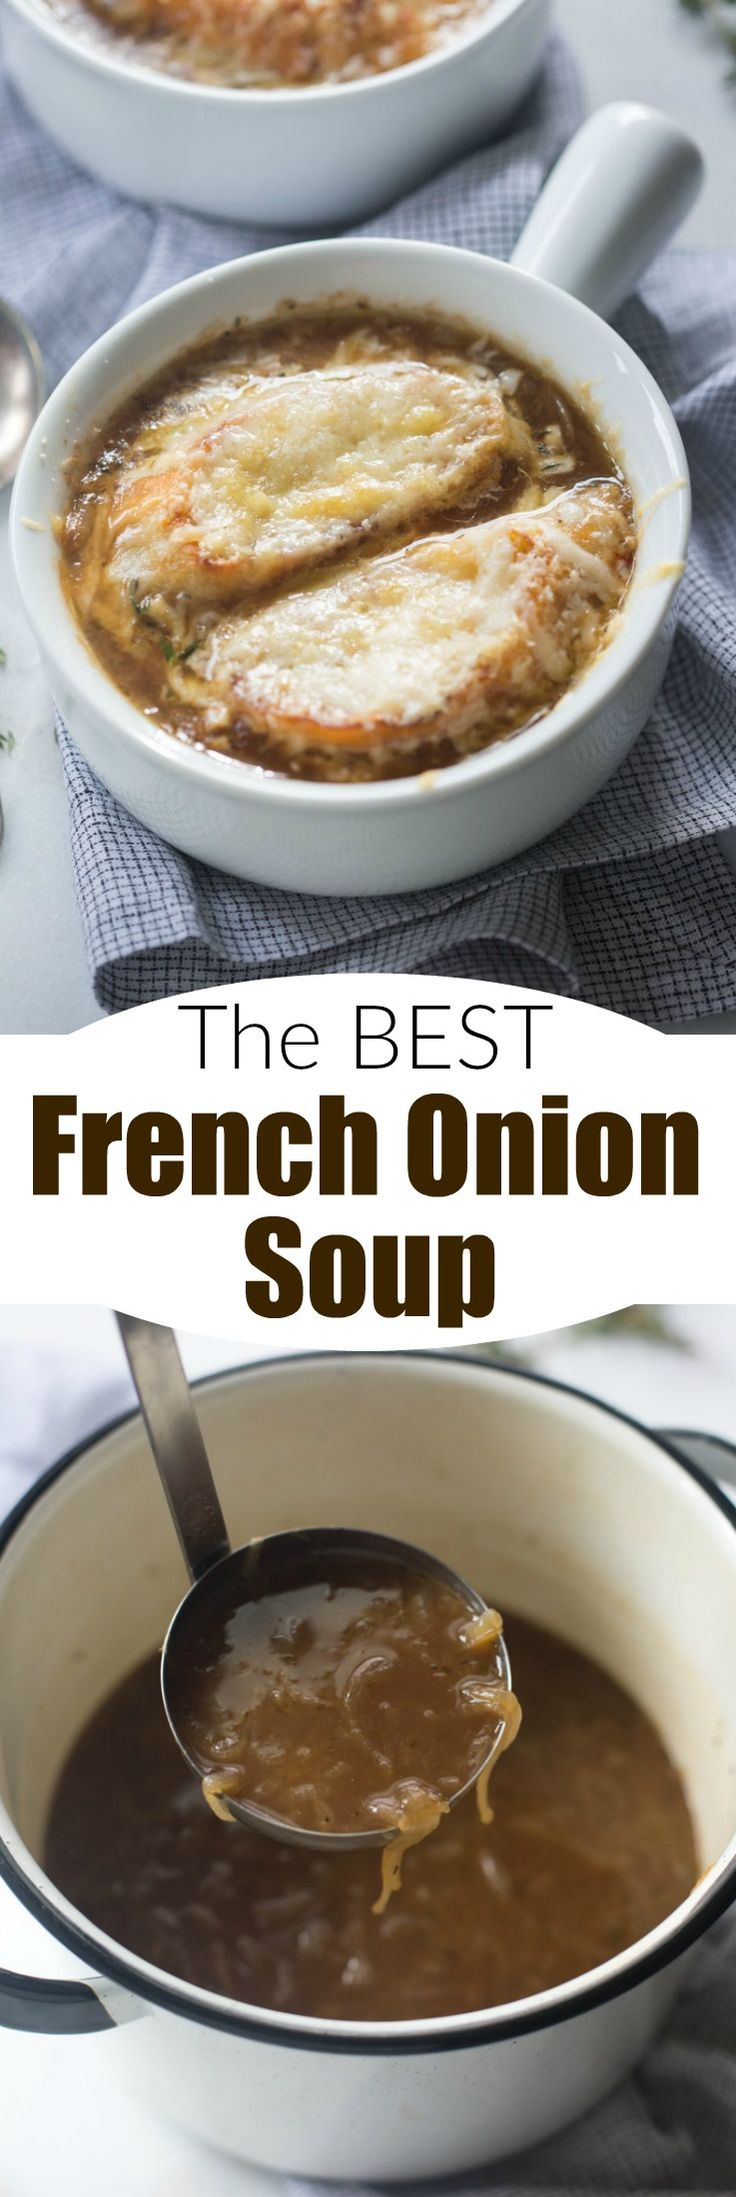 French Onion Soups on Pinterest | French onion, Classic french onion ...